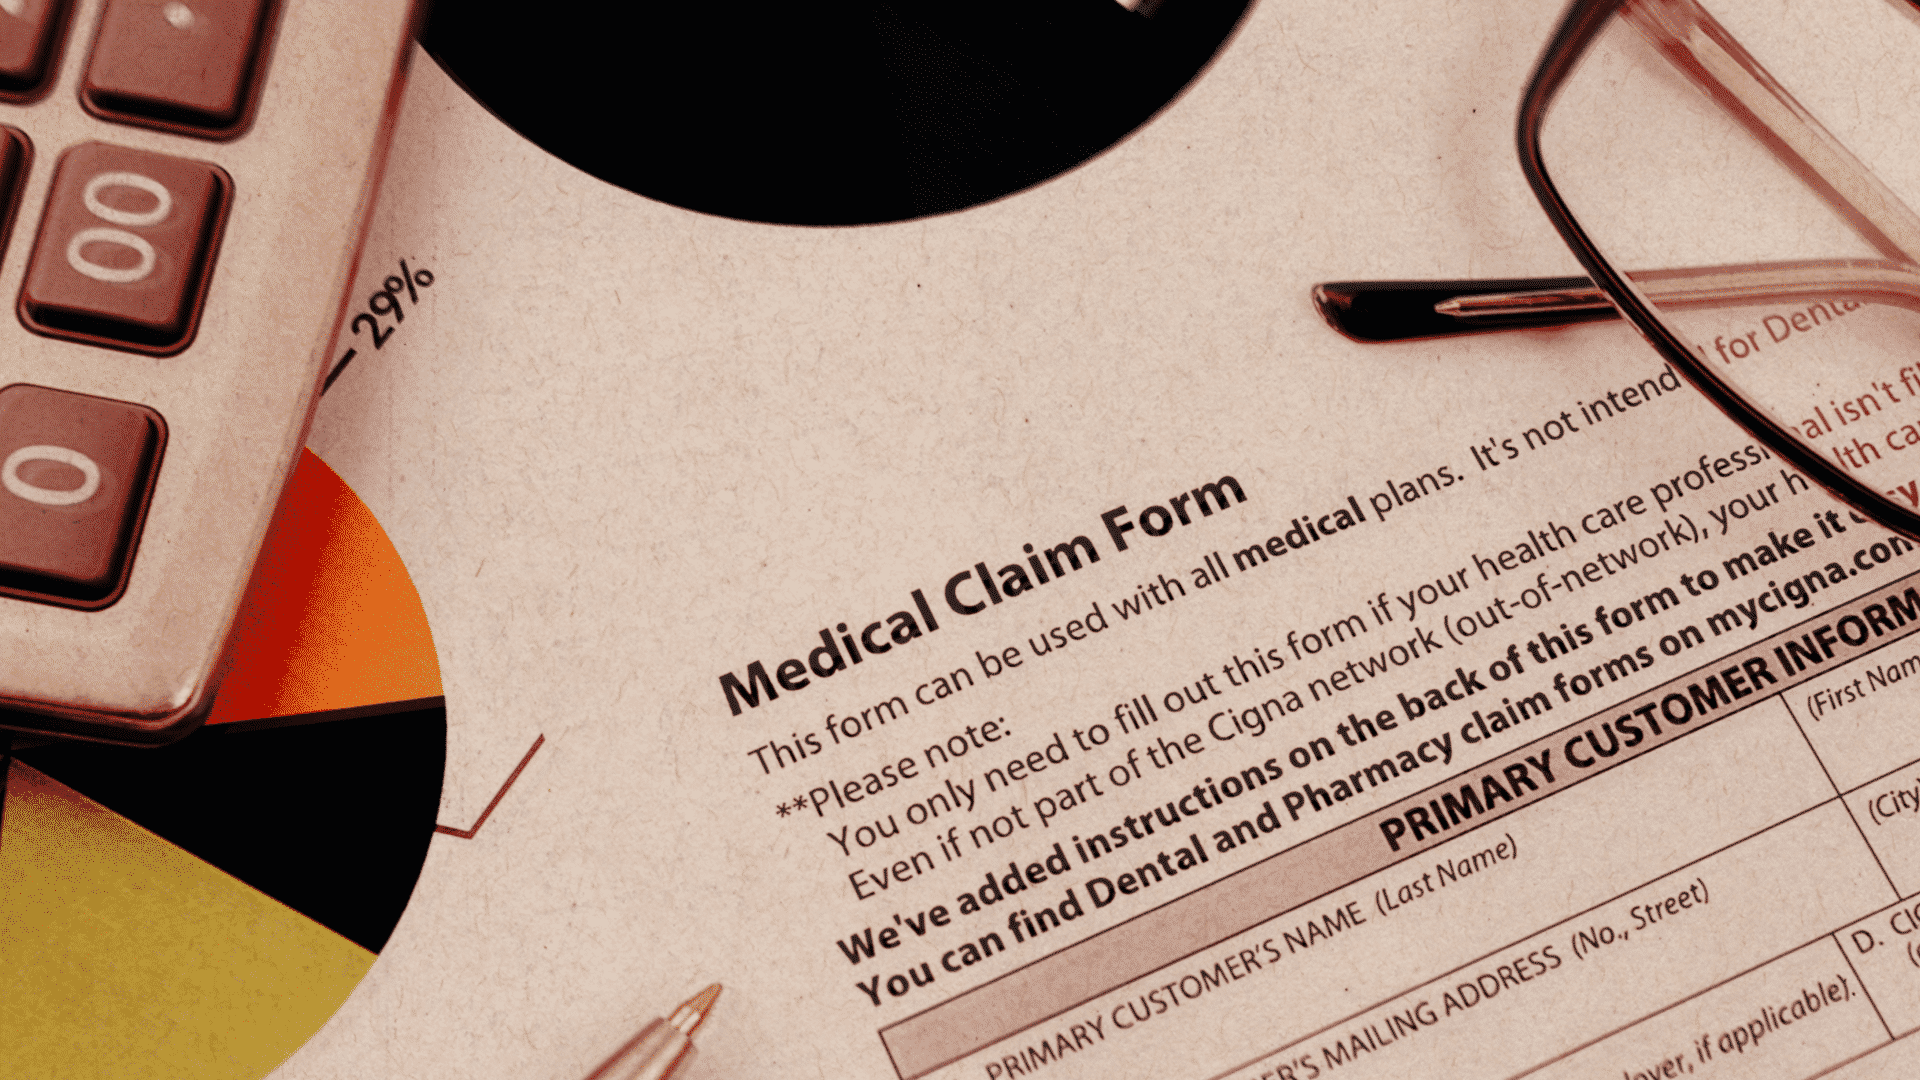 Medical claim form. / THE PATH FORWARD: DEREGULATION AND PROTECTING PROPERTY RIGHTS